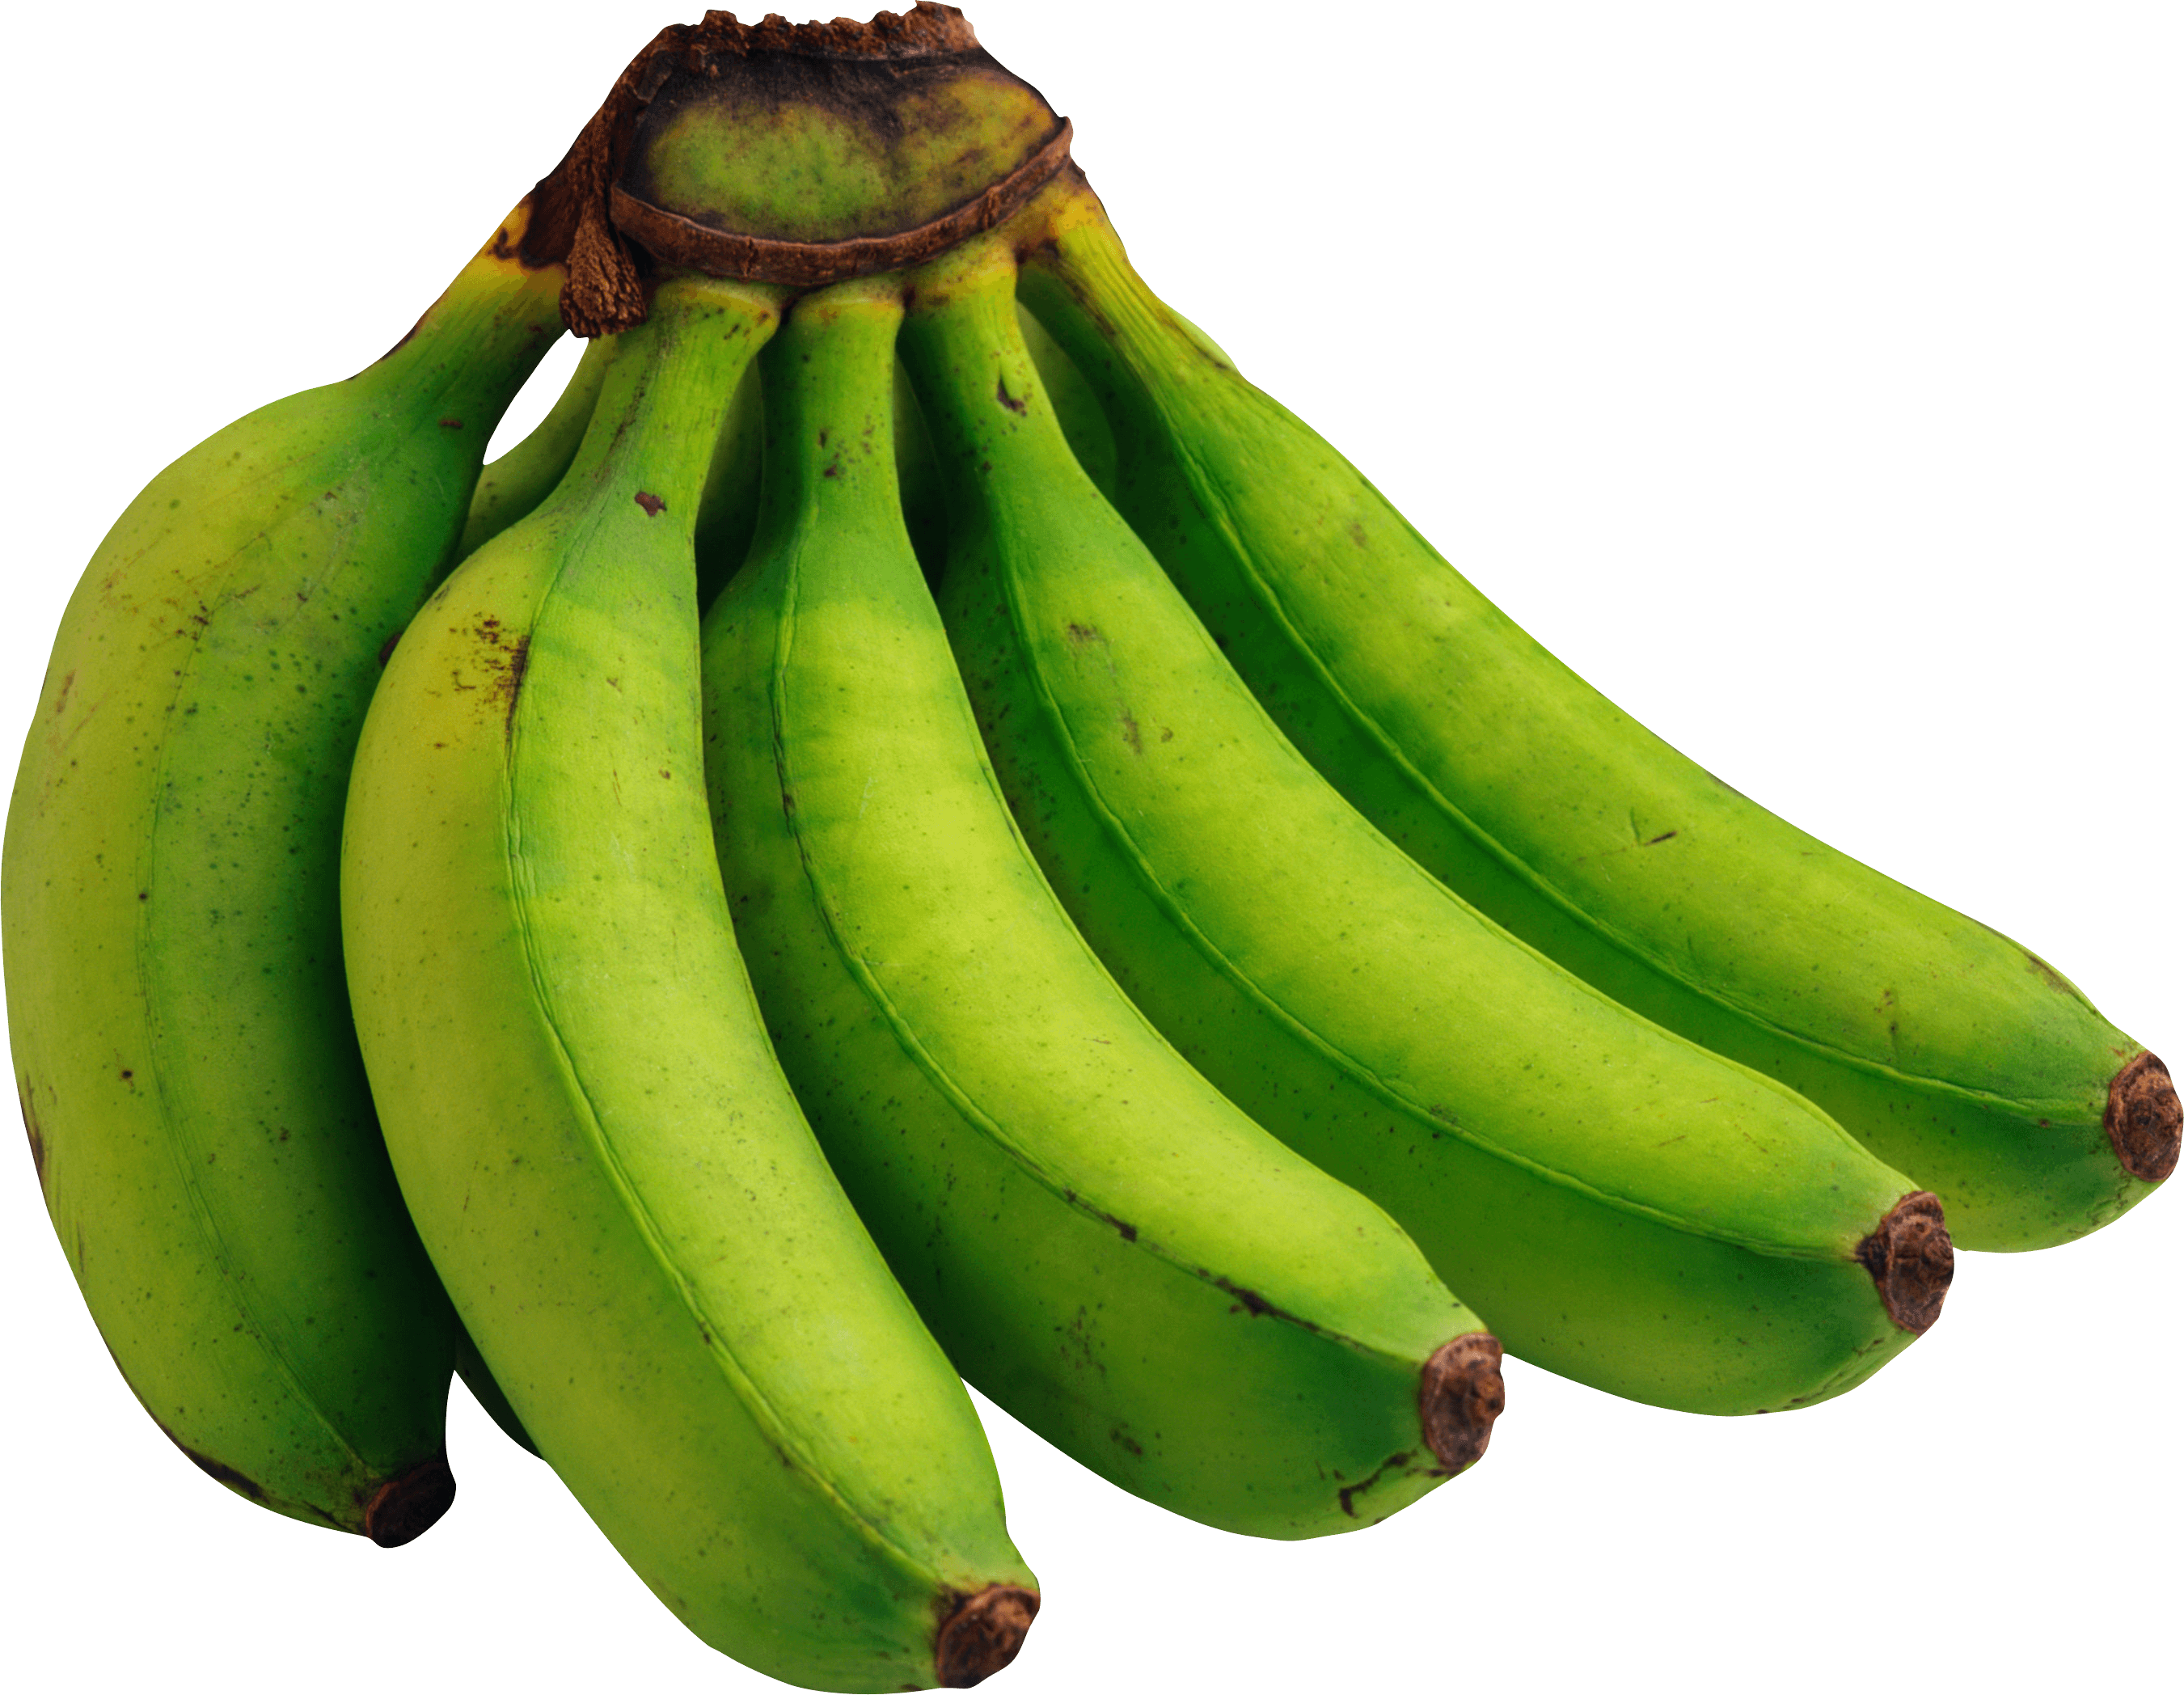 Download Green Bananas Png Image Picture Hq Png Image Freepngimg Are you searching for banana png images or vector? green bananas png image picture